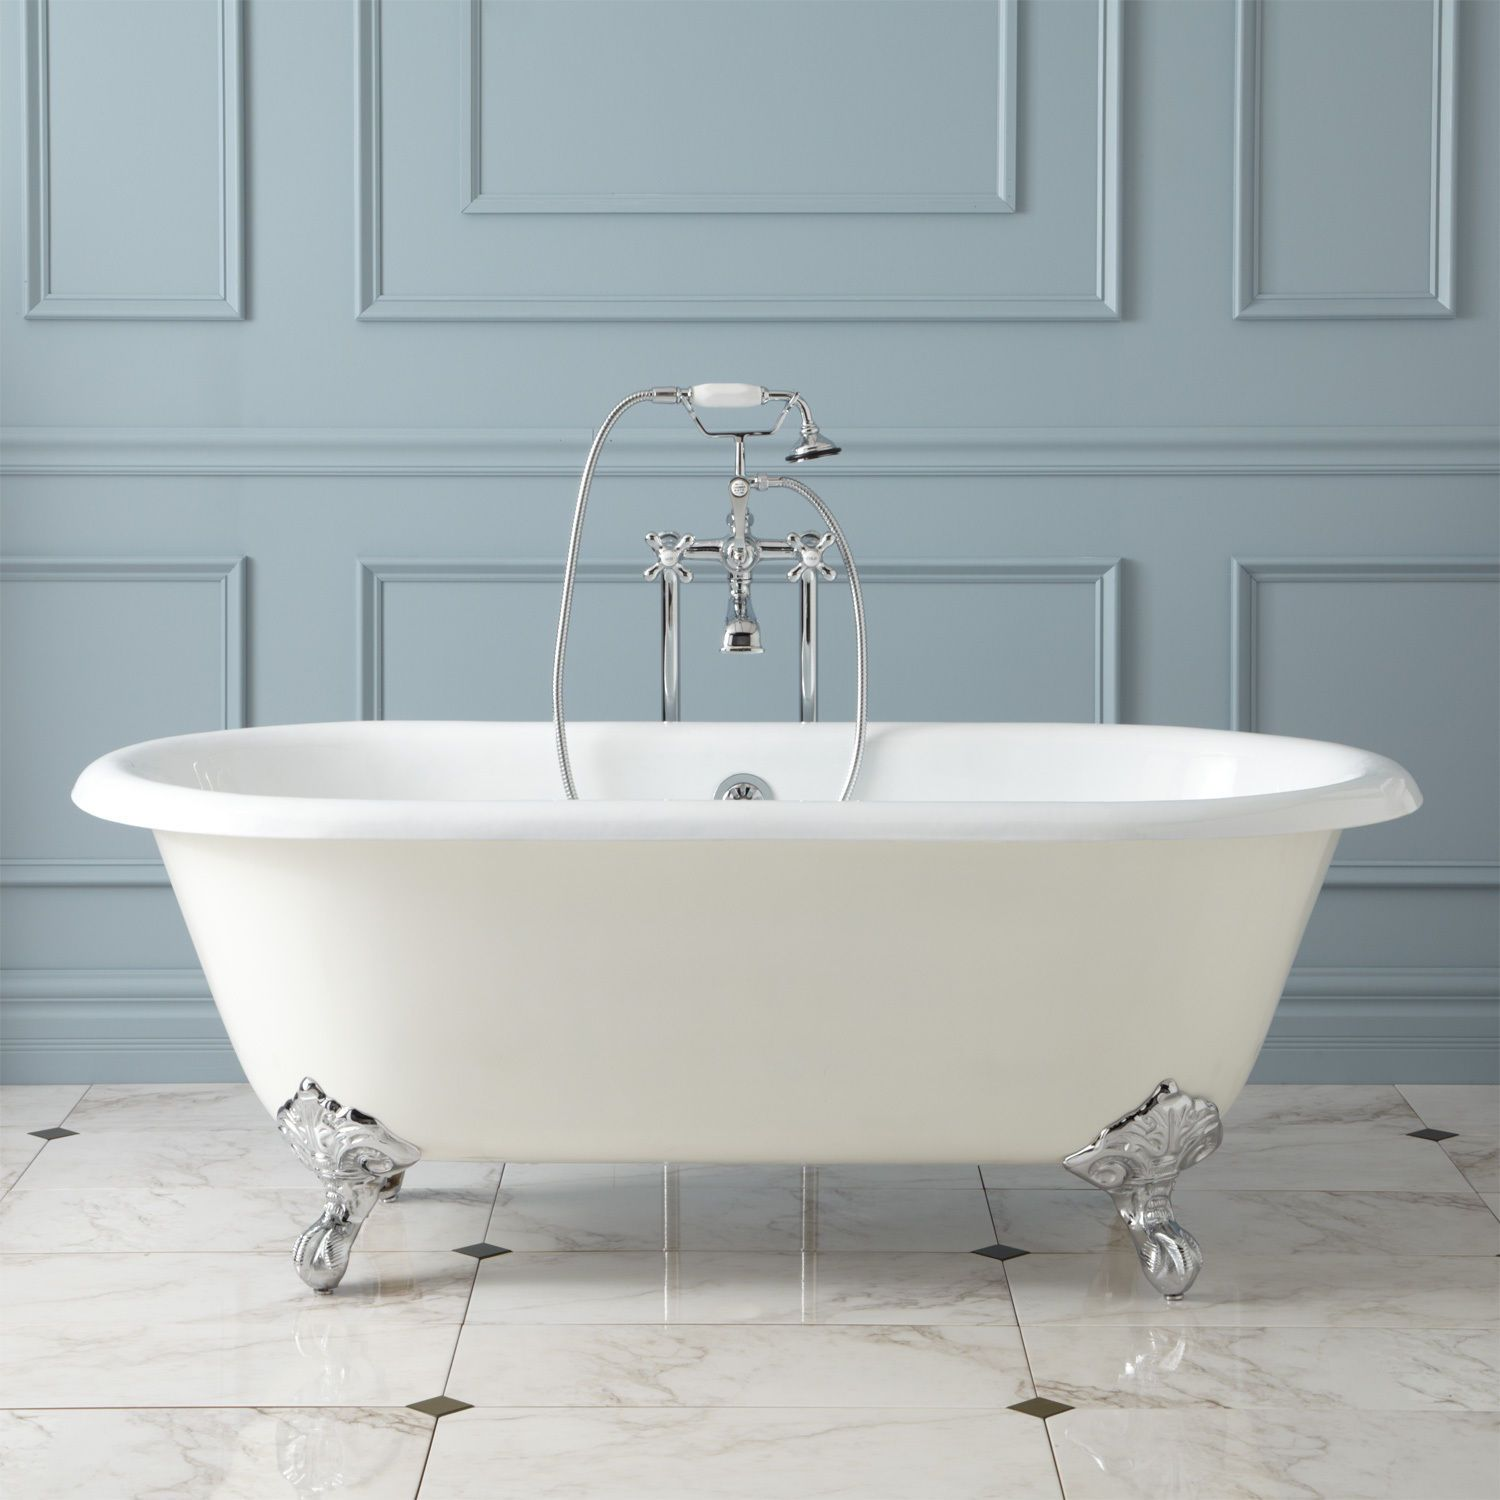 Details About 72 Large Cast Iron Double Slipper Clawfoot Tub With